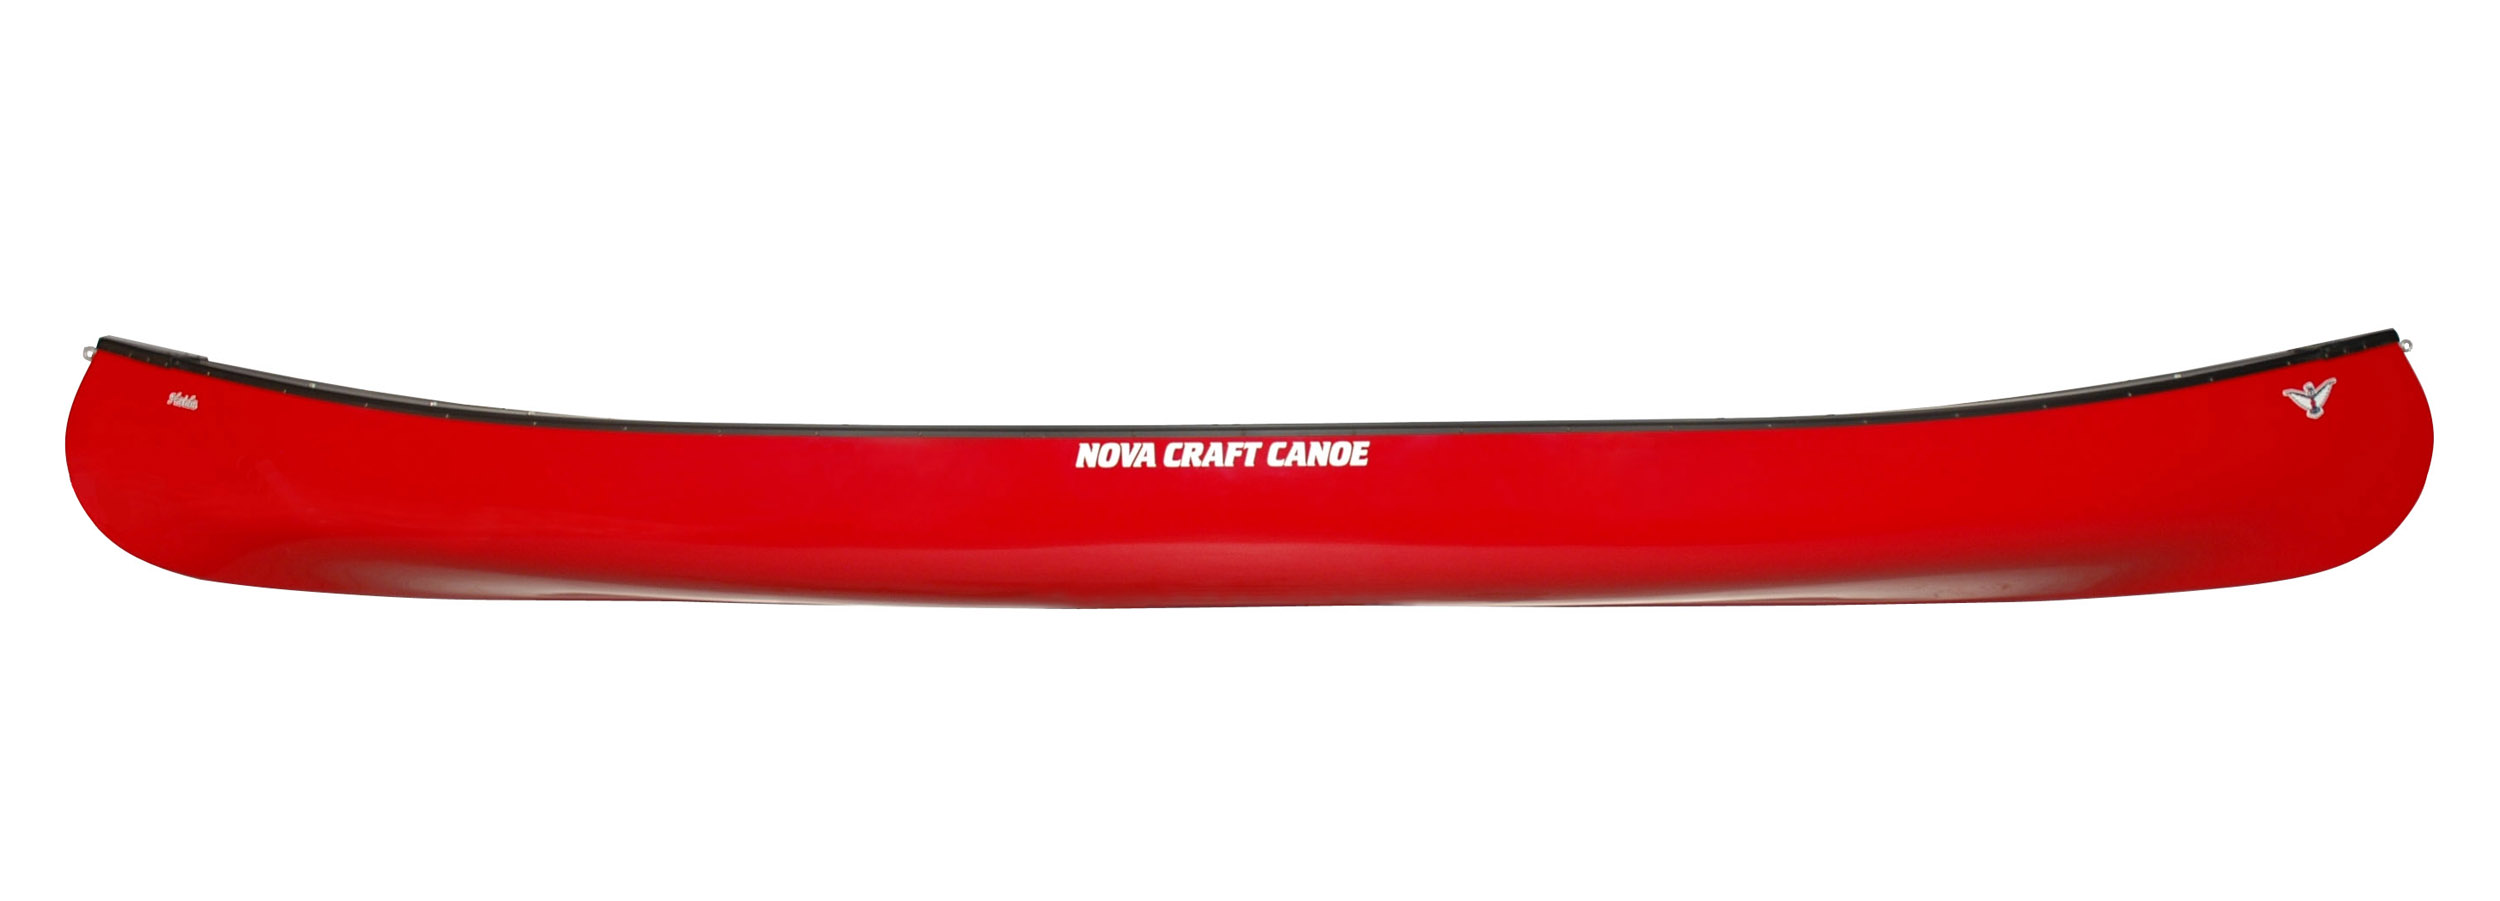 Canoes: Haida by Nova Craft Canoe - Image 2810